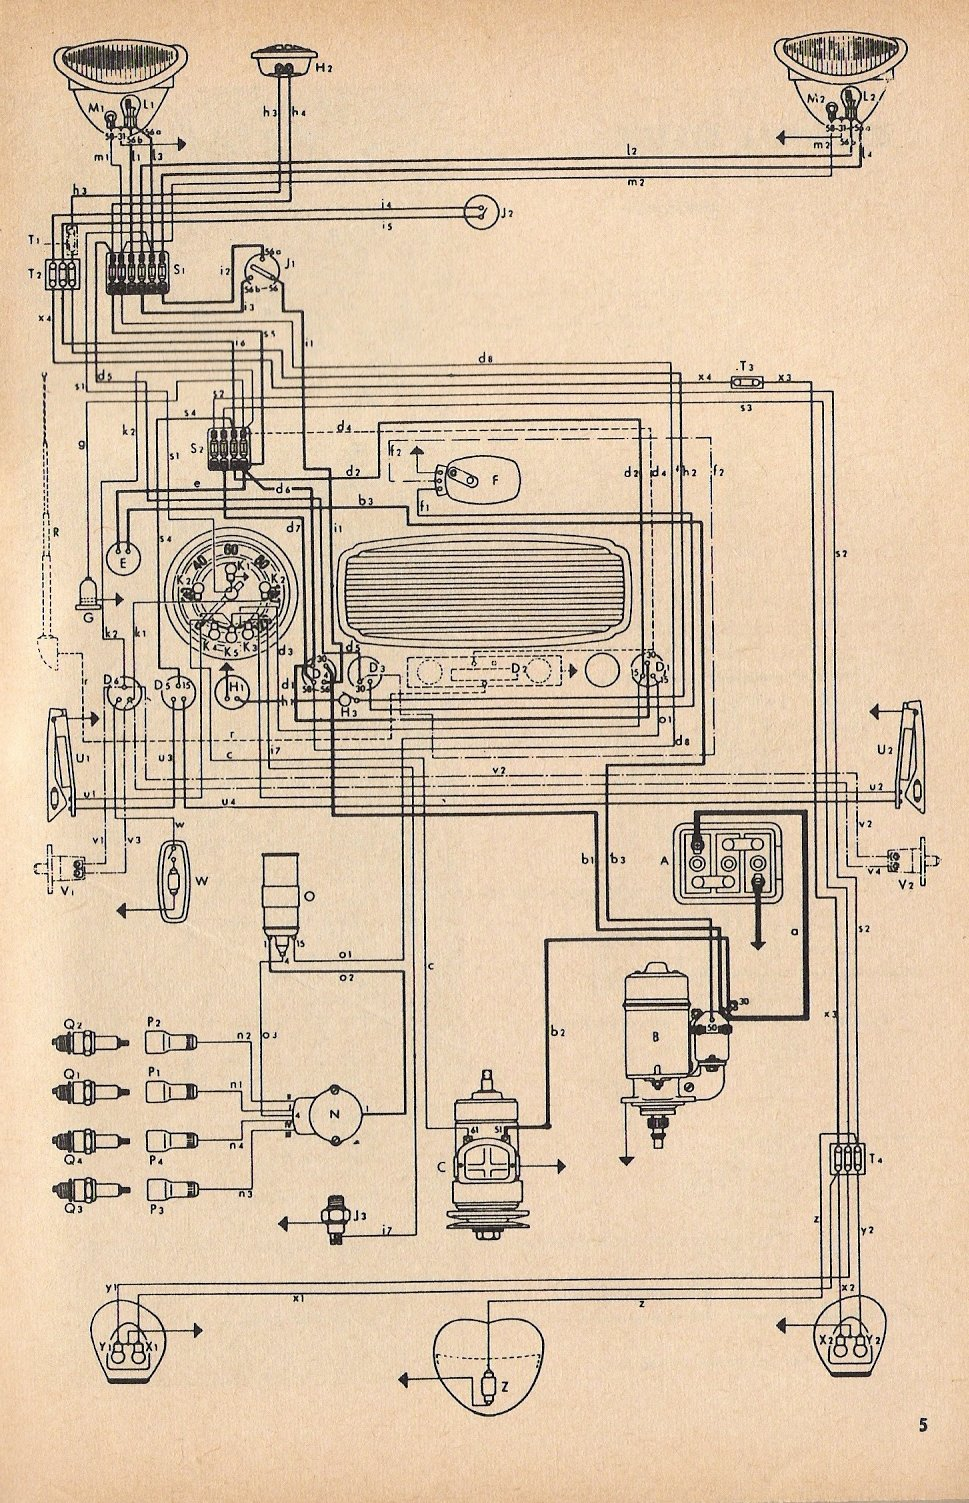 hight resolution of 1973 super beetle wiring diagram thegoldenbug wiring diagrams konsult 1973 vw super beetle engine wiring diagram